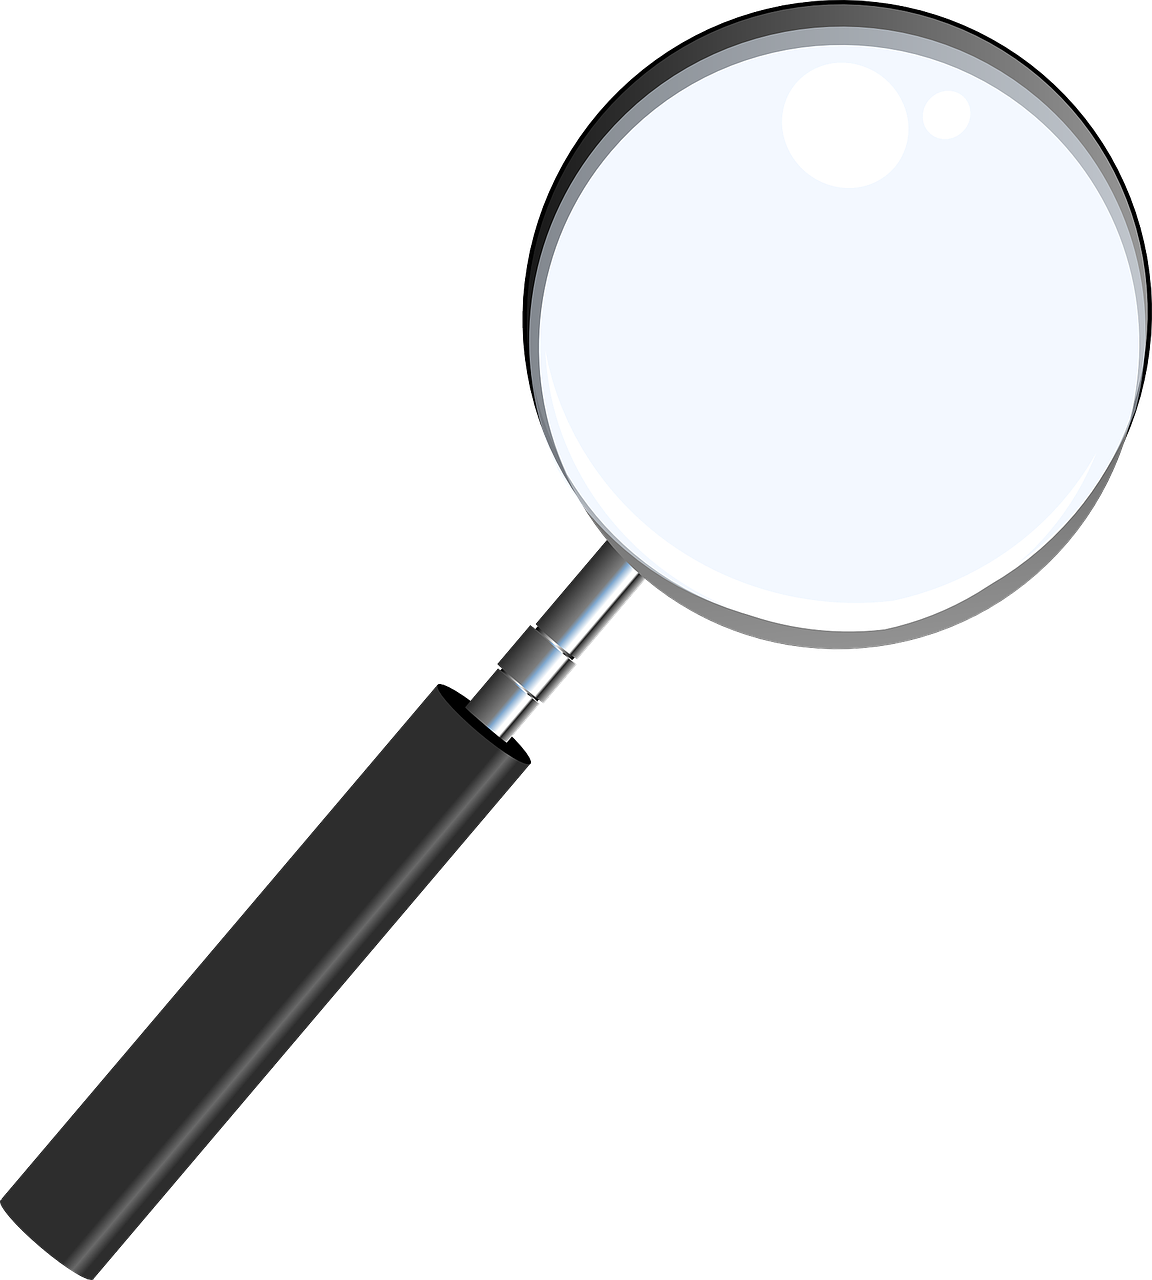 magnifying,glass,optical,lupe,enlarge,search,magnification,detective,focus,investigate,closeup,observation,sight,examine,eyesight,optic,see,macro,reading,read,vision,free vector graphics,free pictures, free photos, free images, royalty free, free illustrations, public domain